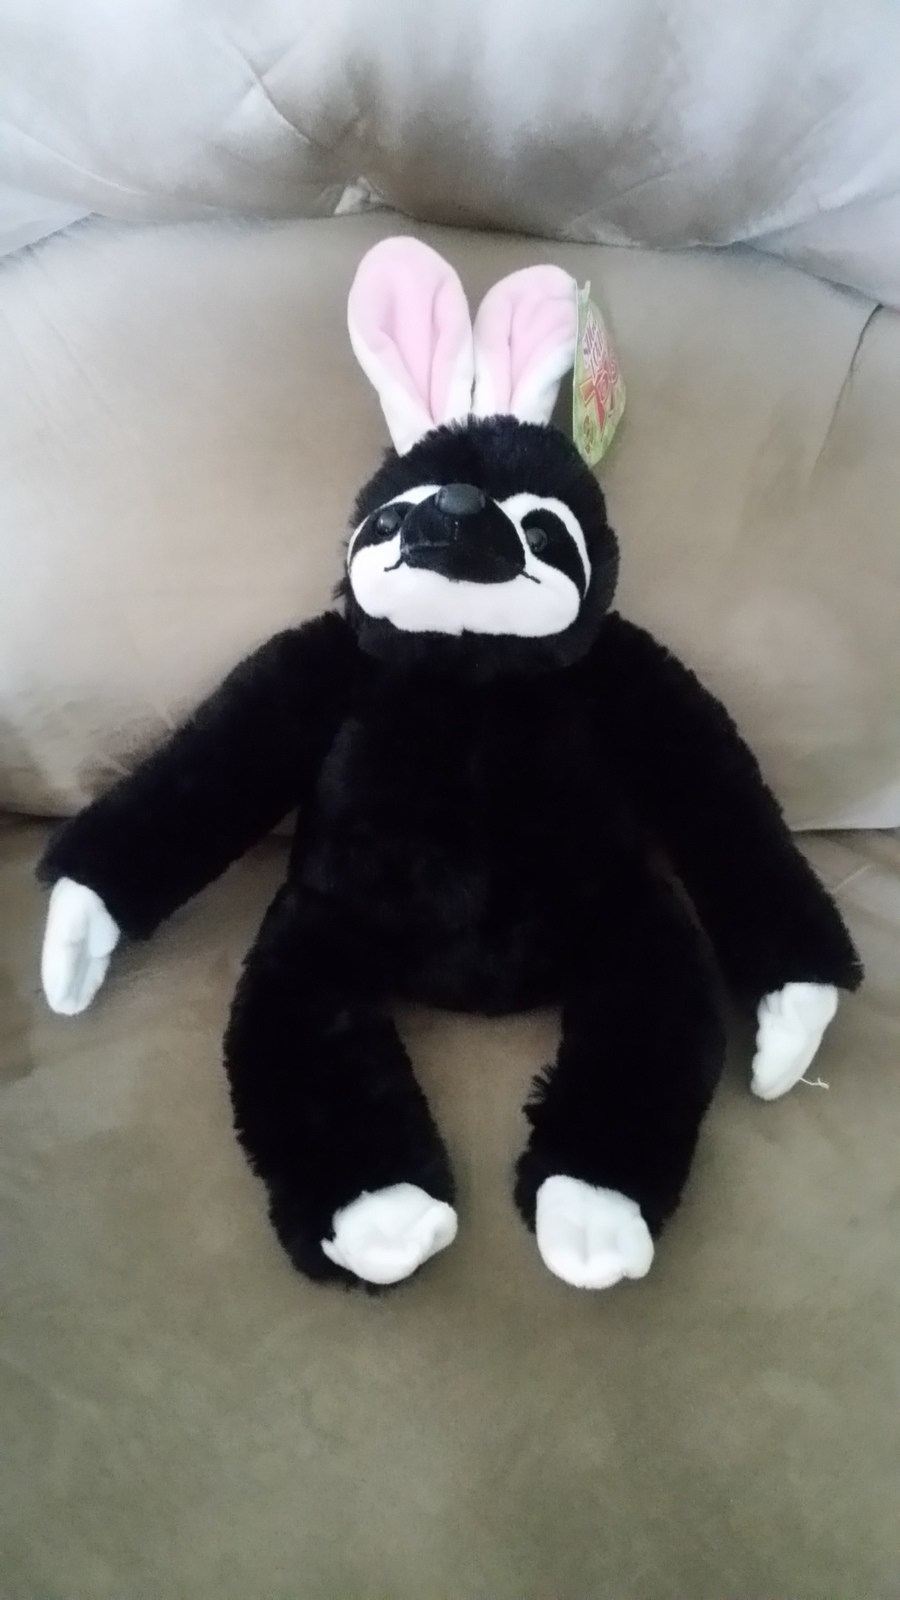 Black Sloth with Bunny Ears Brand New Plush NWT Stuffed Animal w/ Tags 15""